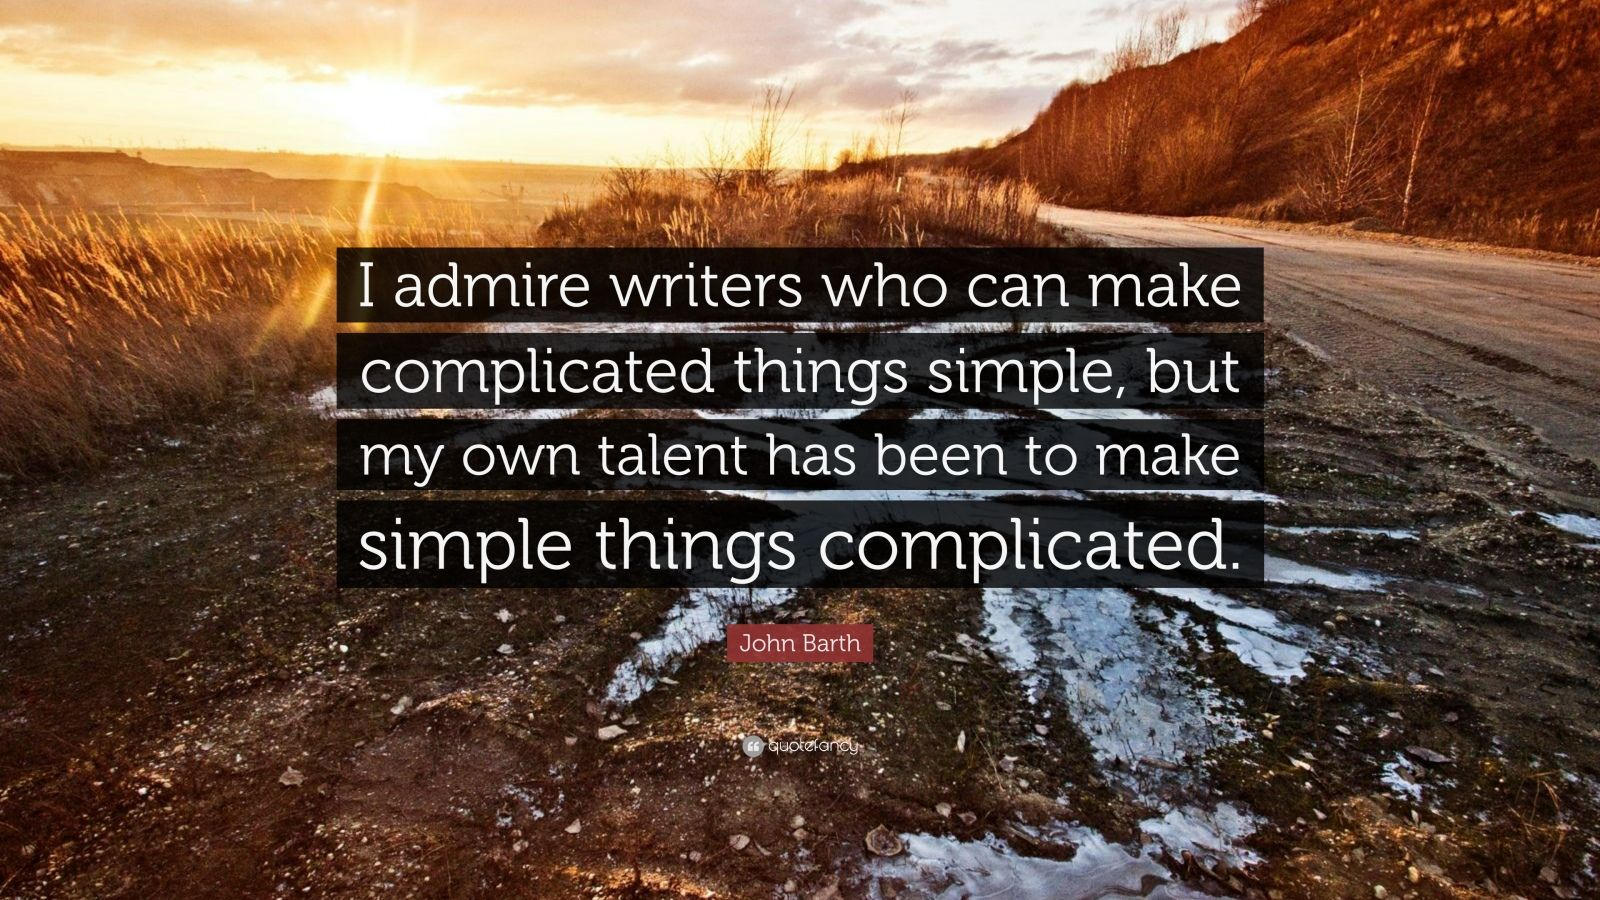 John Barth Quote I Admire Writers Who Can Make Complicated Things Simple But My Own Talent